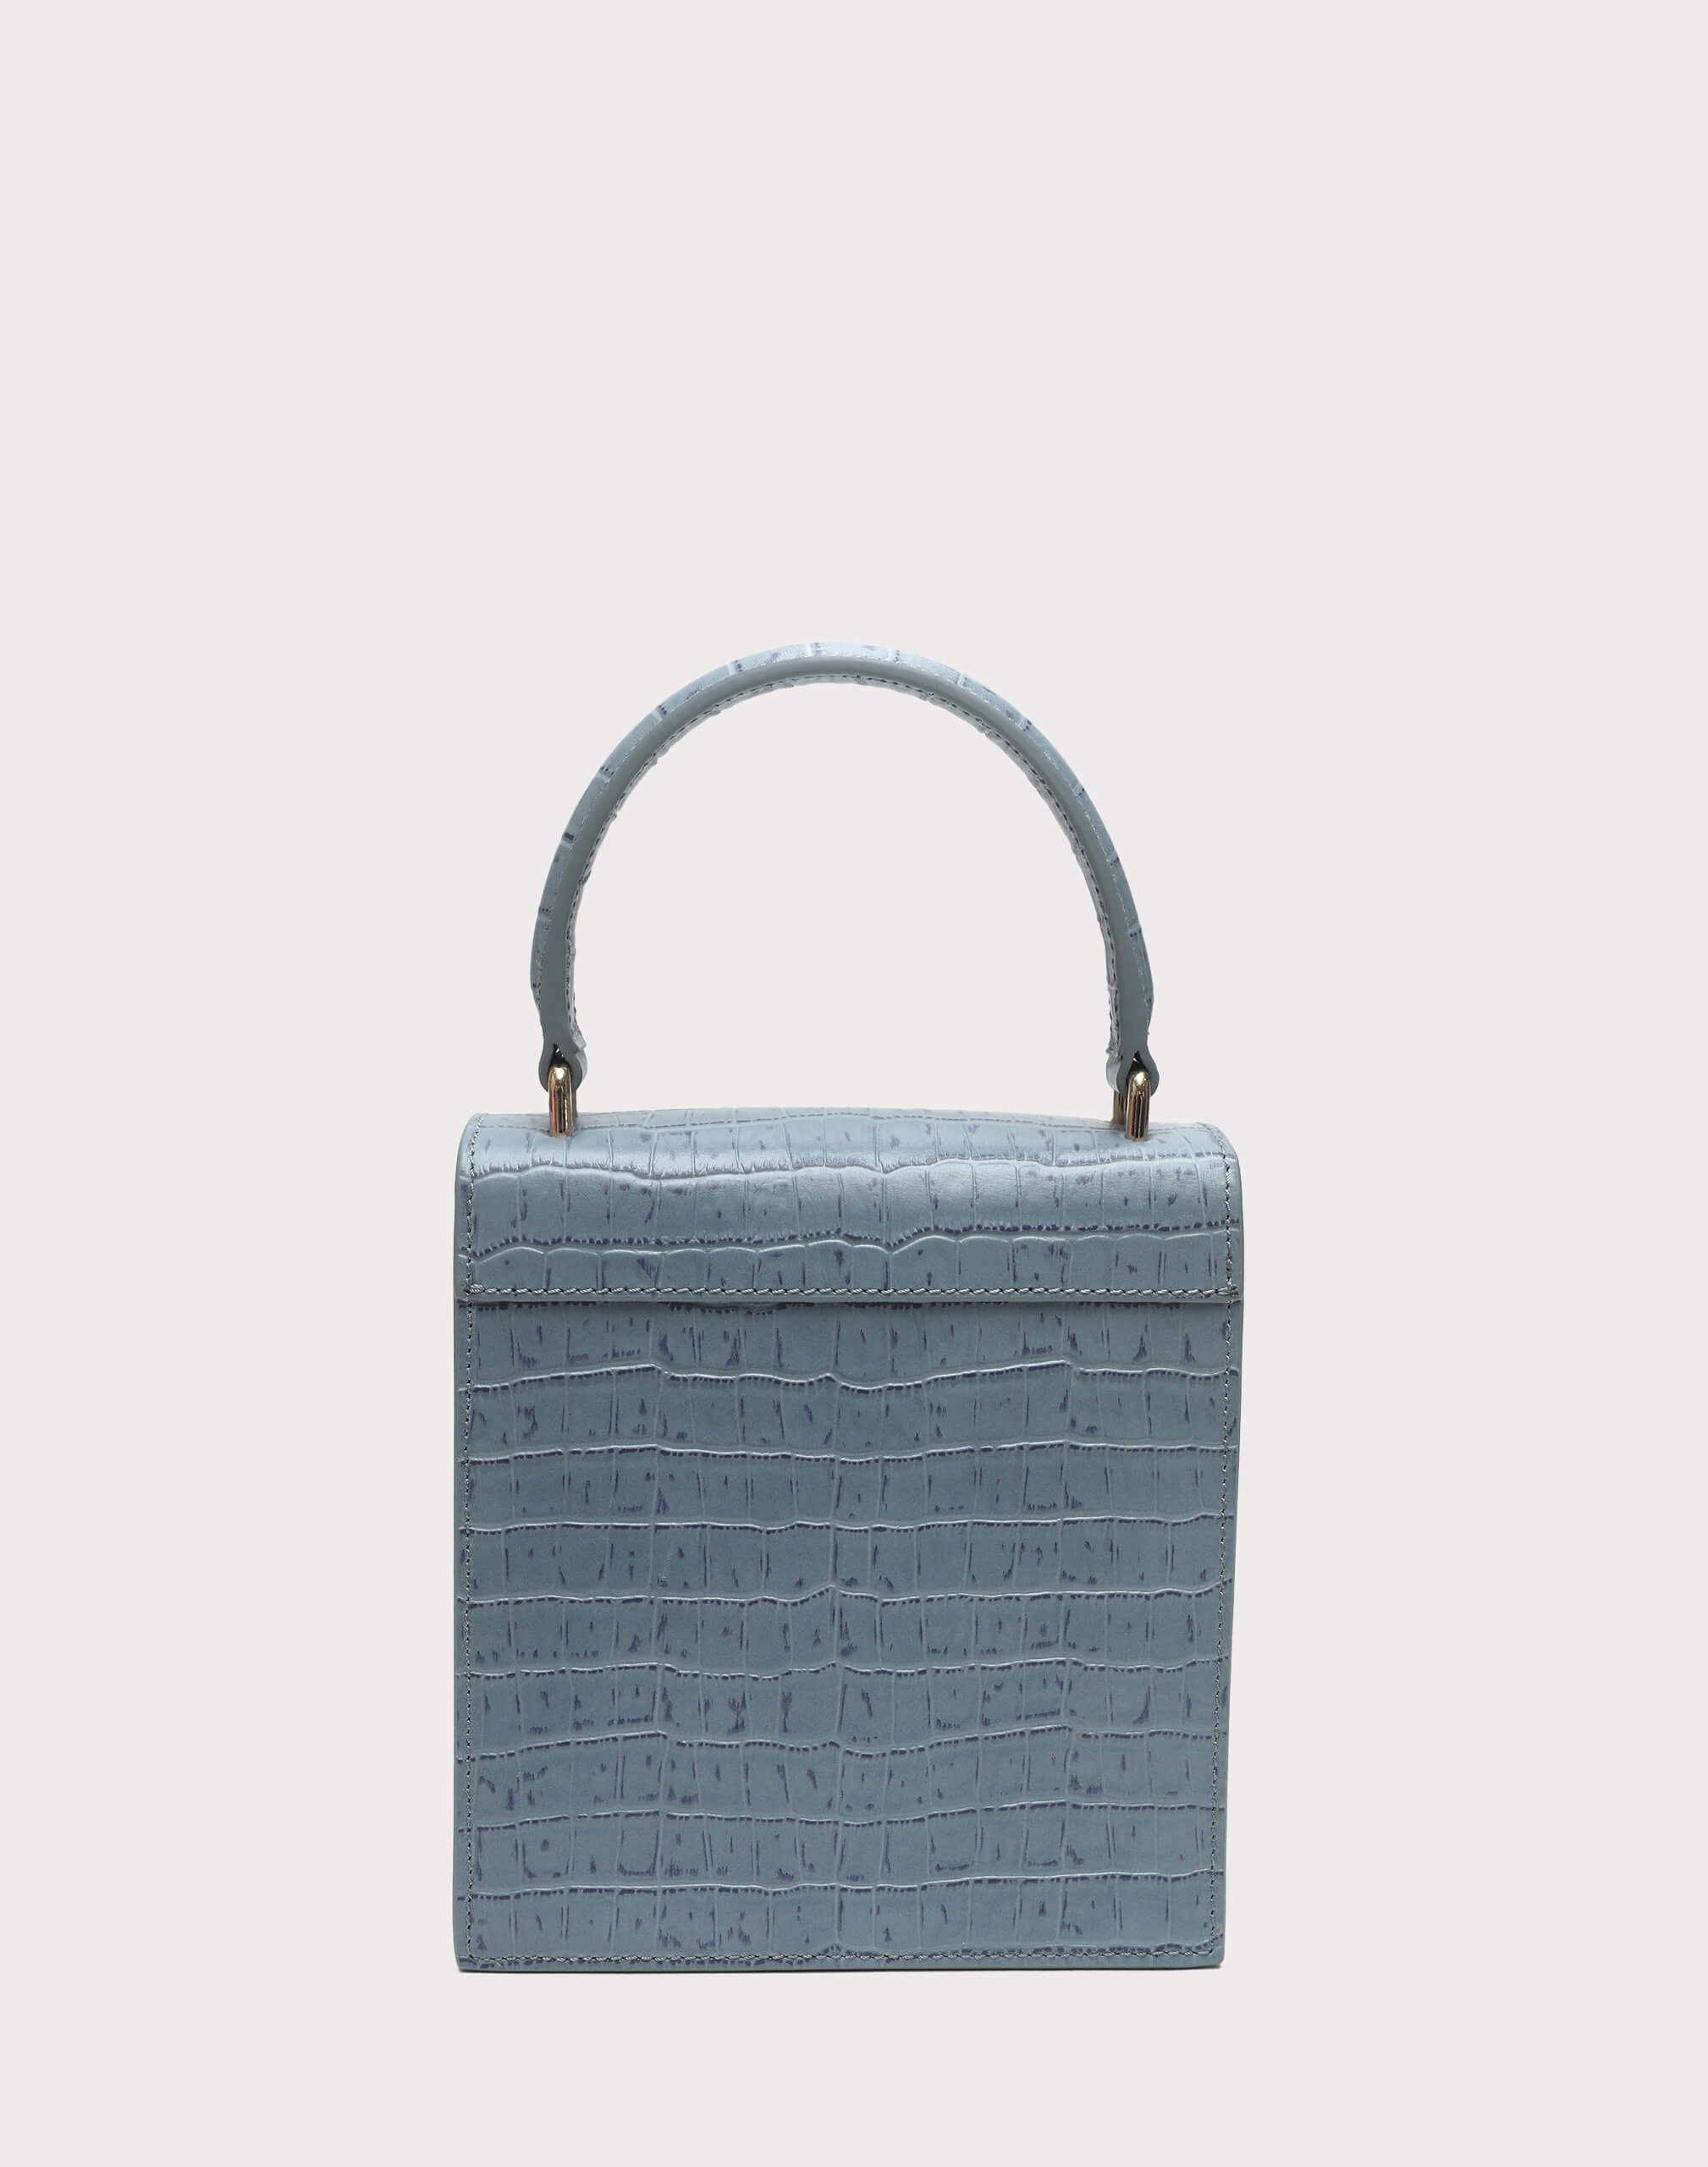 Neely & Chloe No. 19 Mini Lady Bag Croc Back View Steel Blue